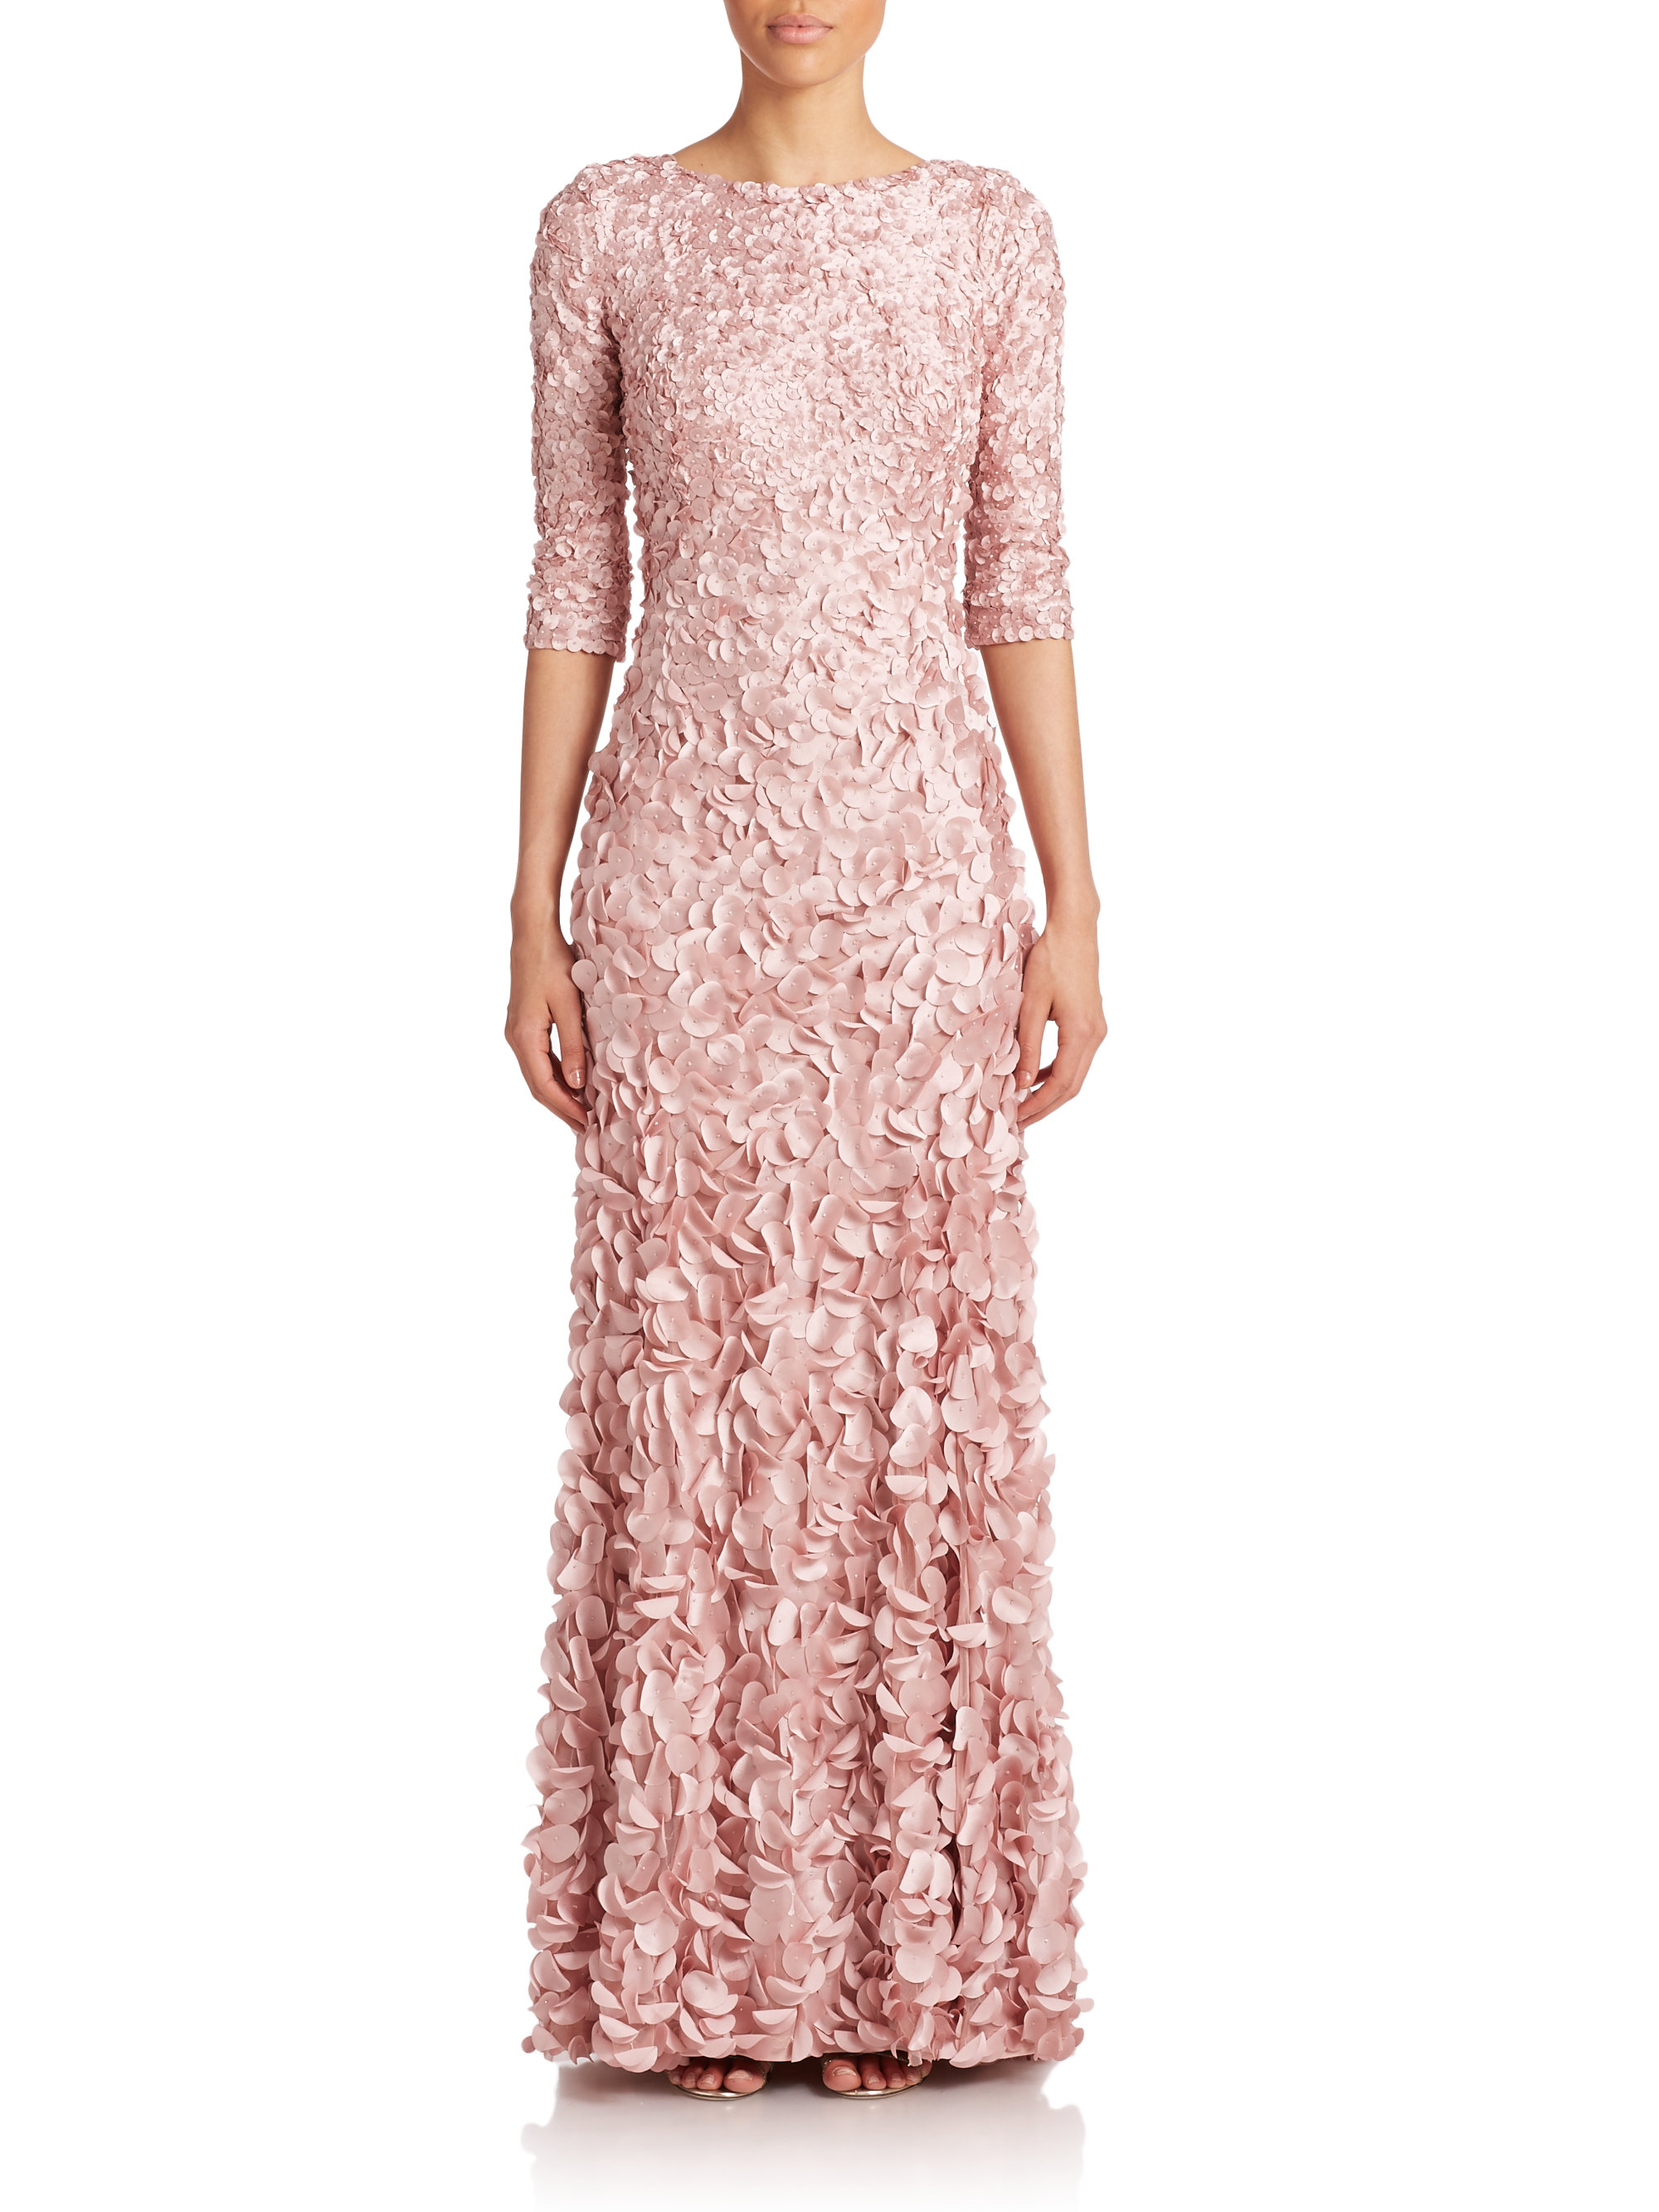 Lyst - Theia Beaded Petal Gown in Pink